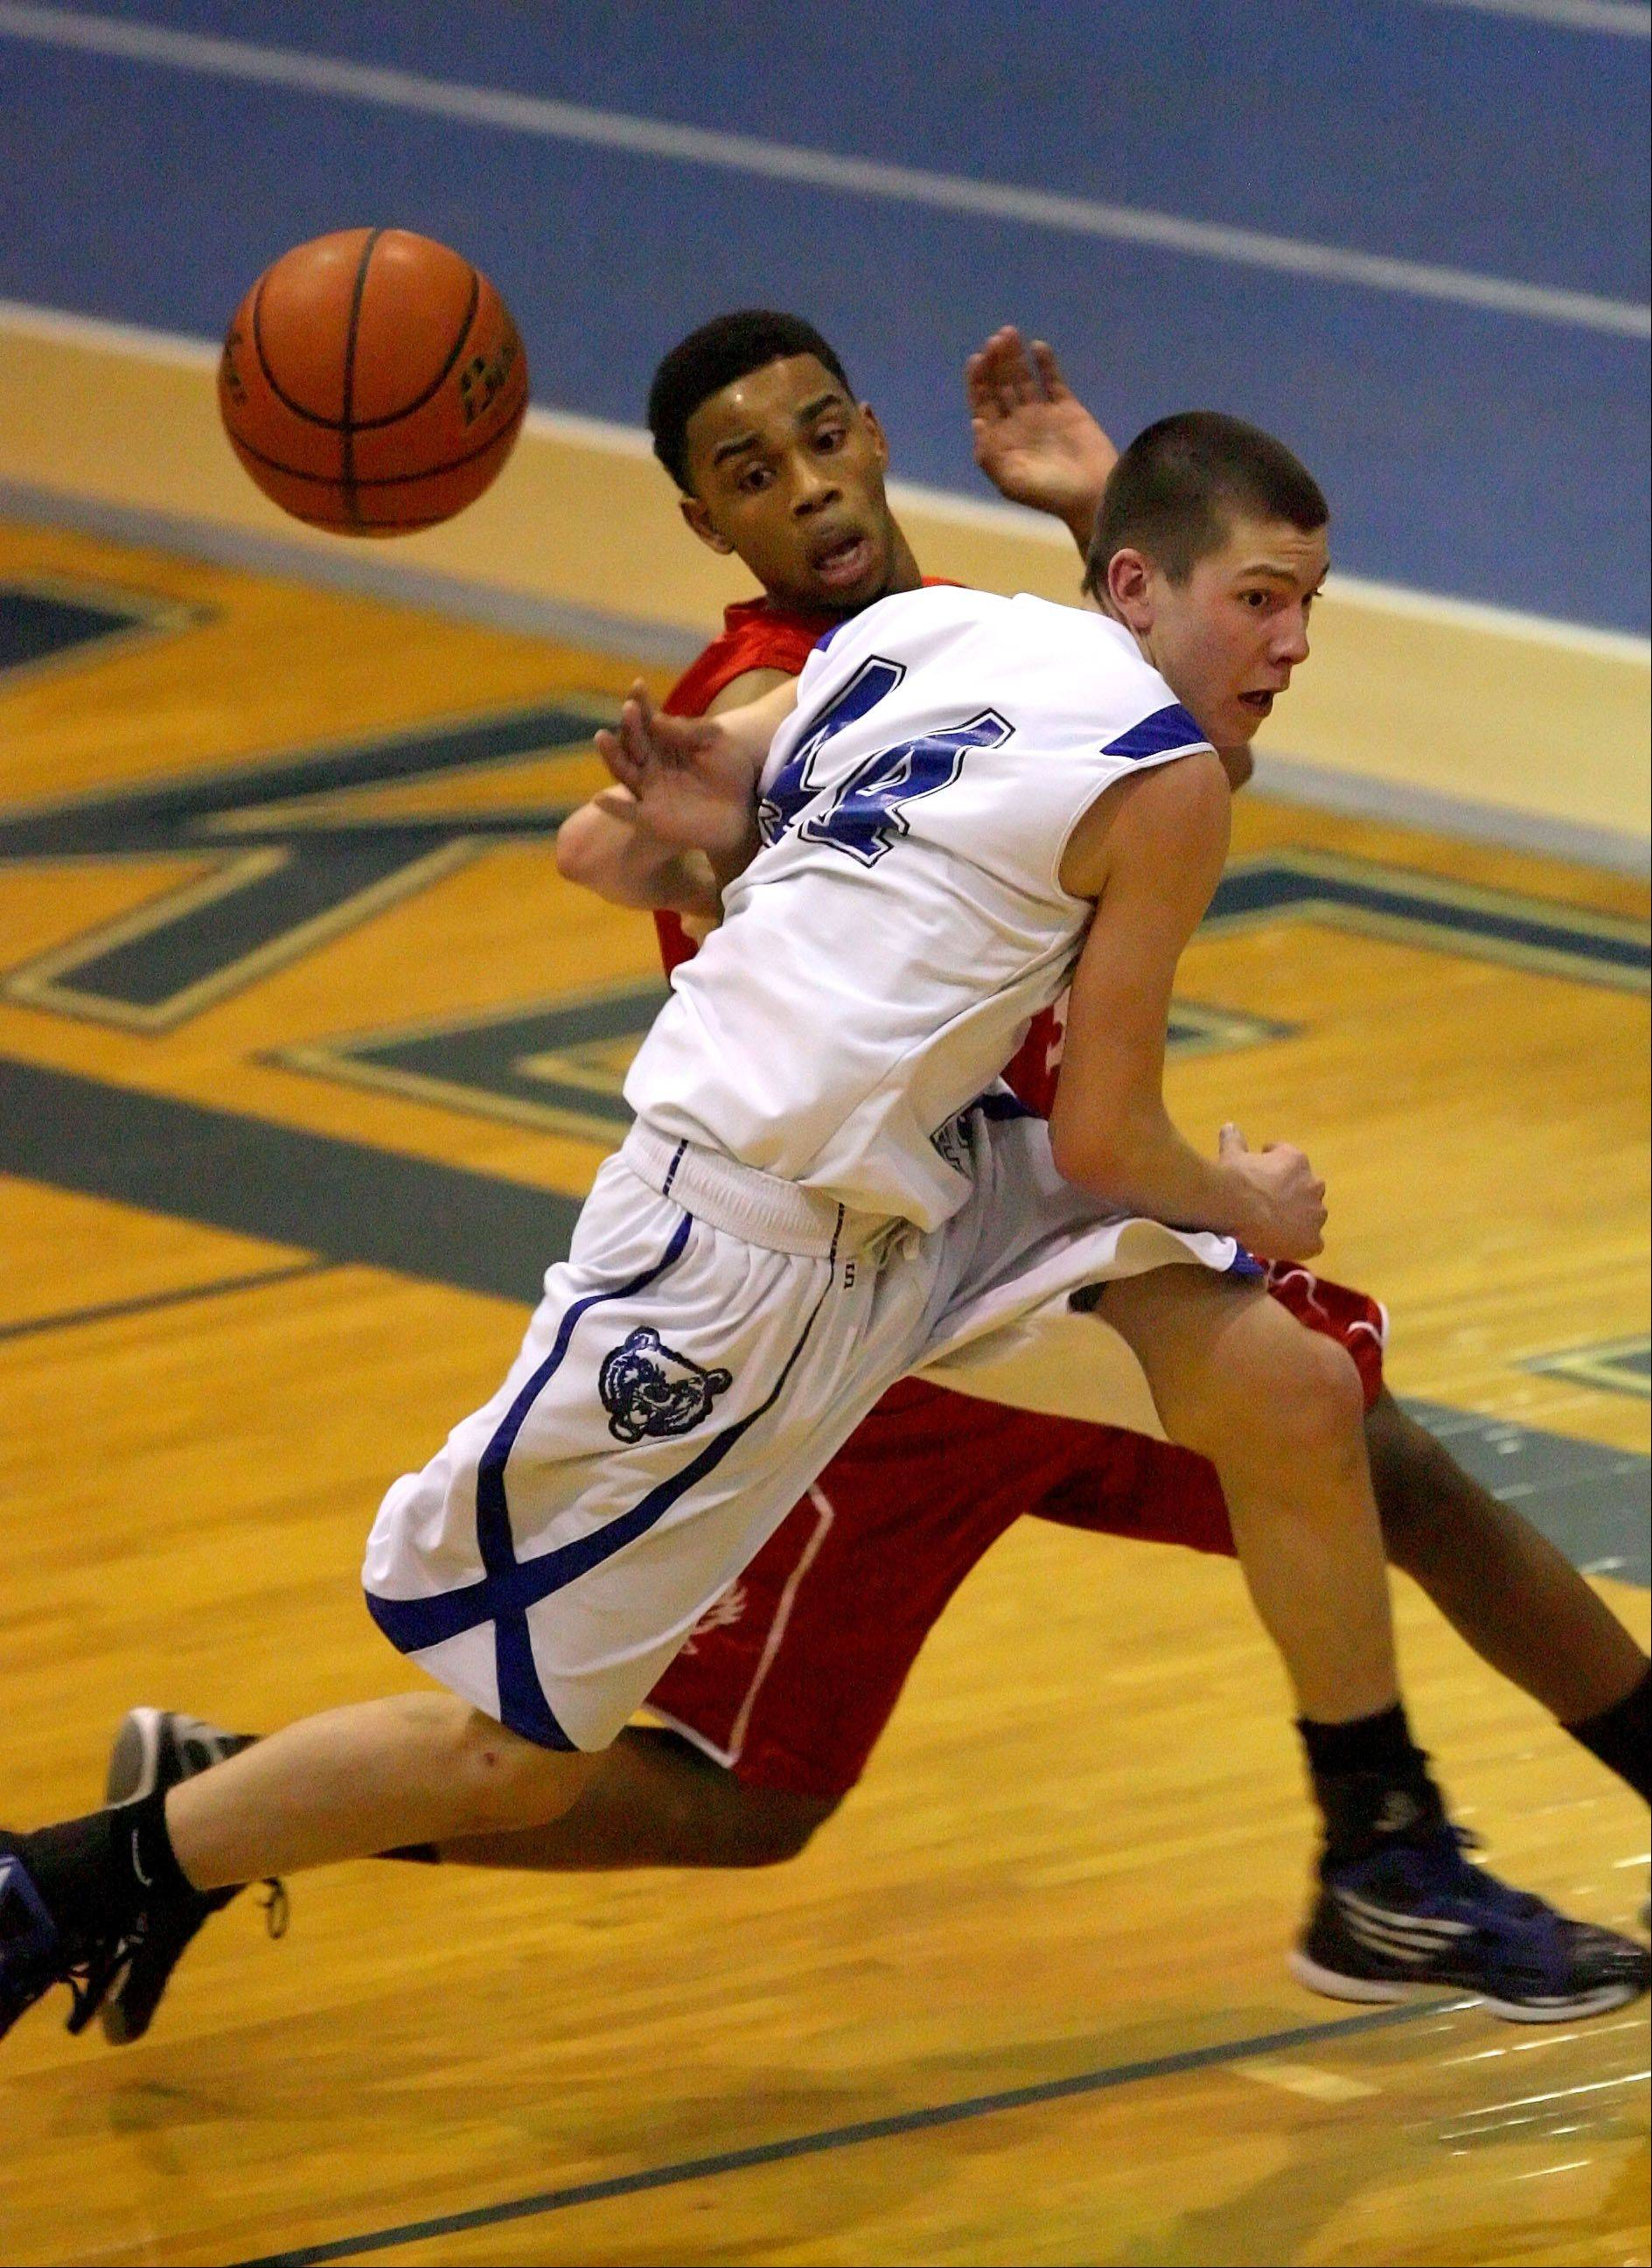 Lake Zurich's Ryan Roach battles for a loose ball against North Chicago's Marzhone Bryant last season. Roach is among the scoring leaders for the Bears this year.